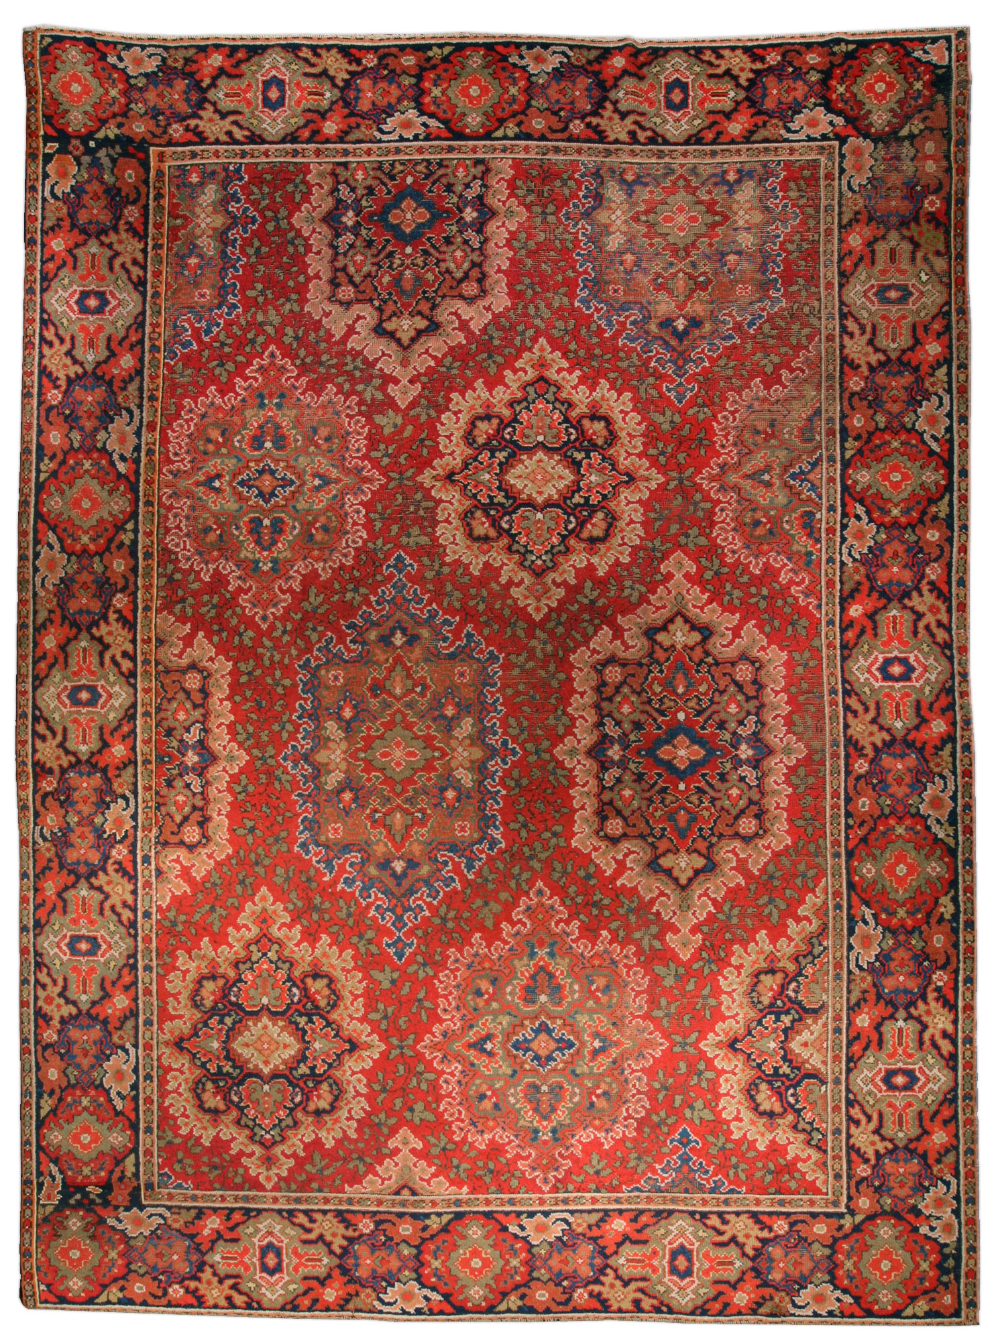 Antique English Axminster Carpet Bb1406 By Dlb Easy Carpets Design In 2020 Axminster Carpets Rugs Antiques